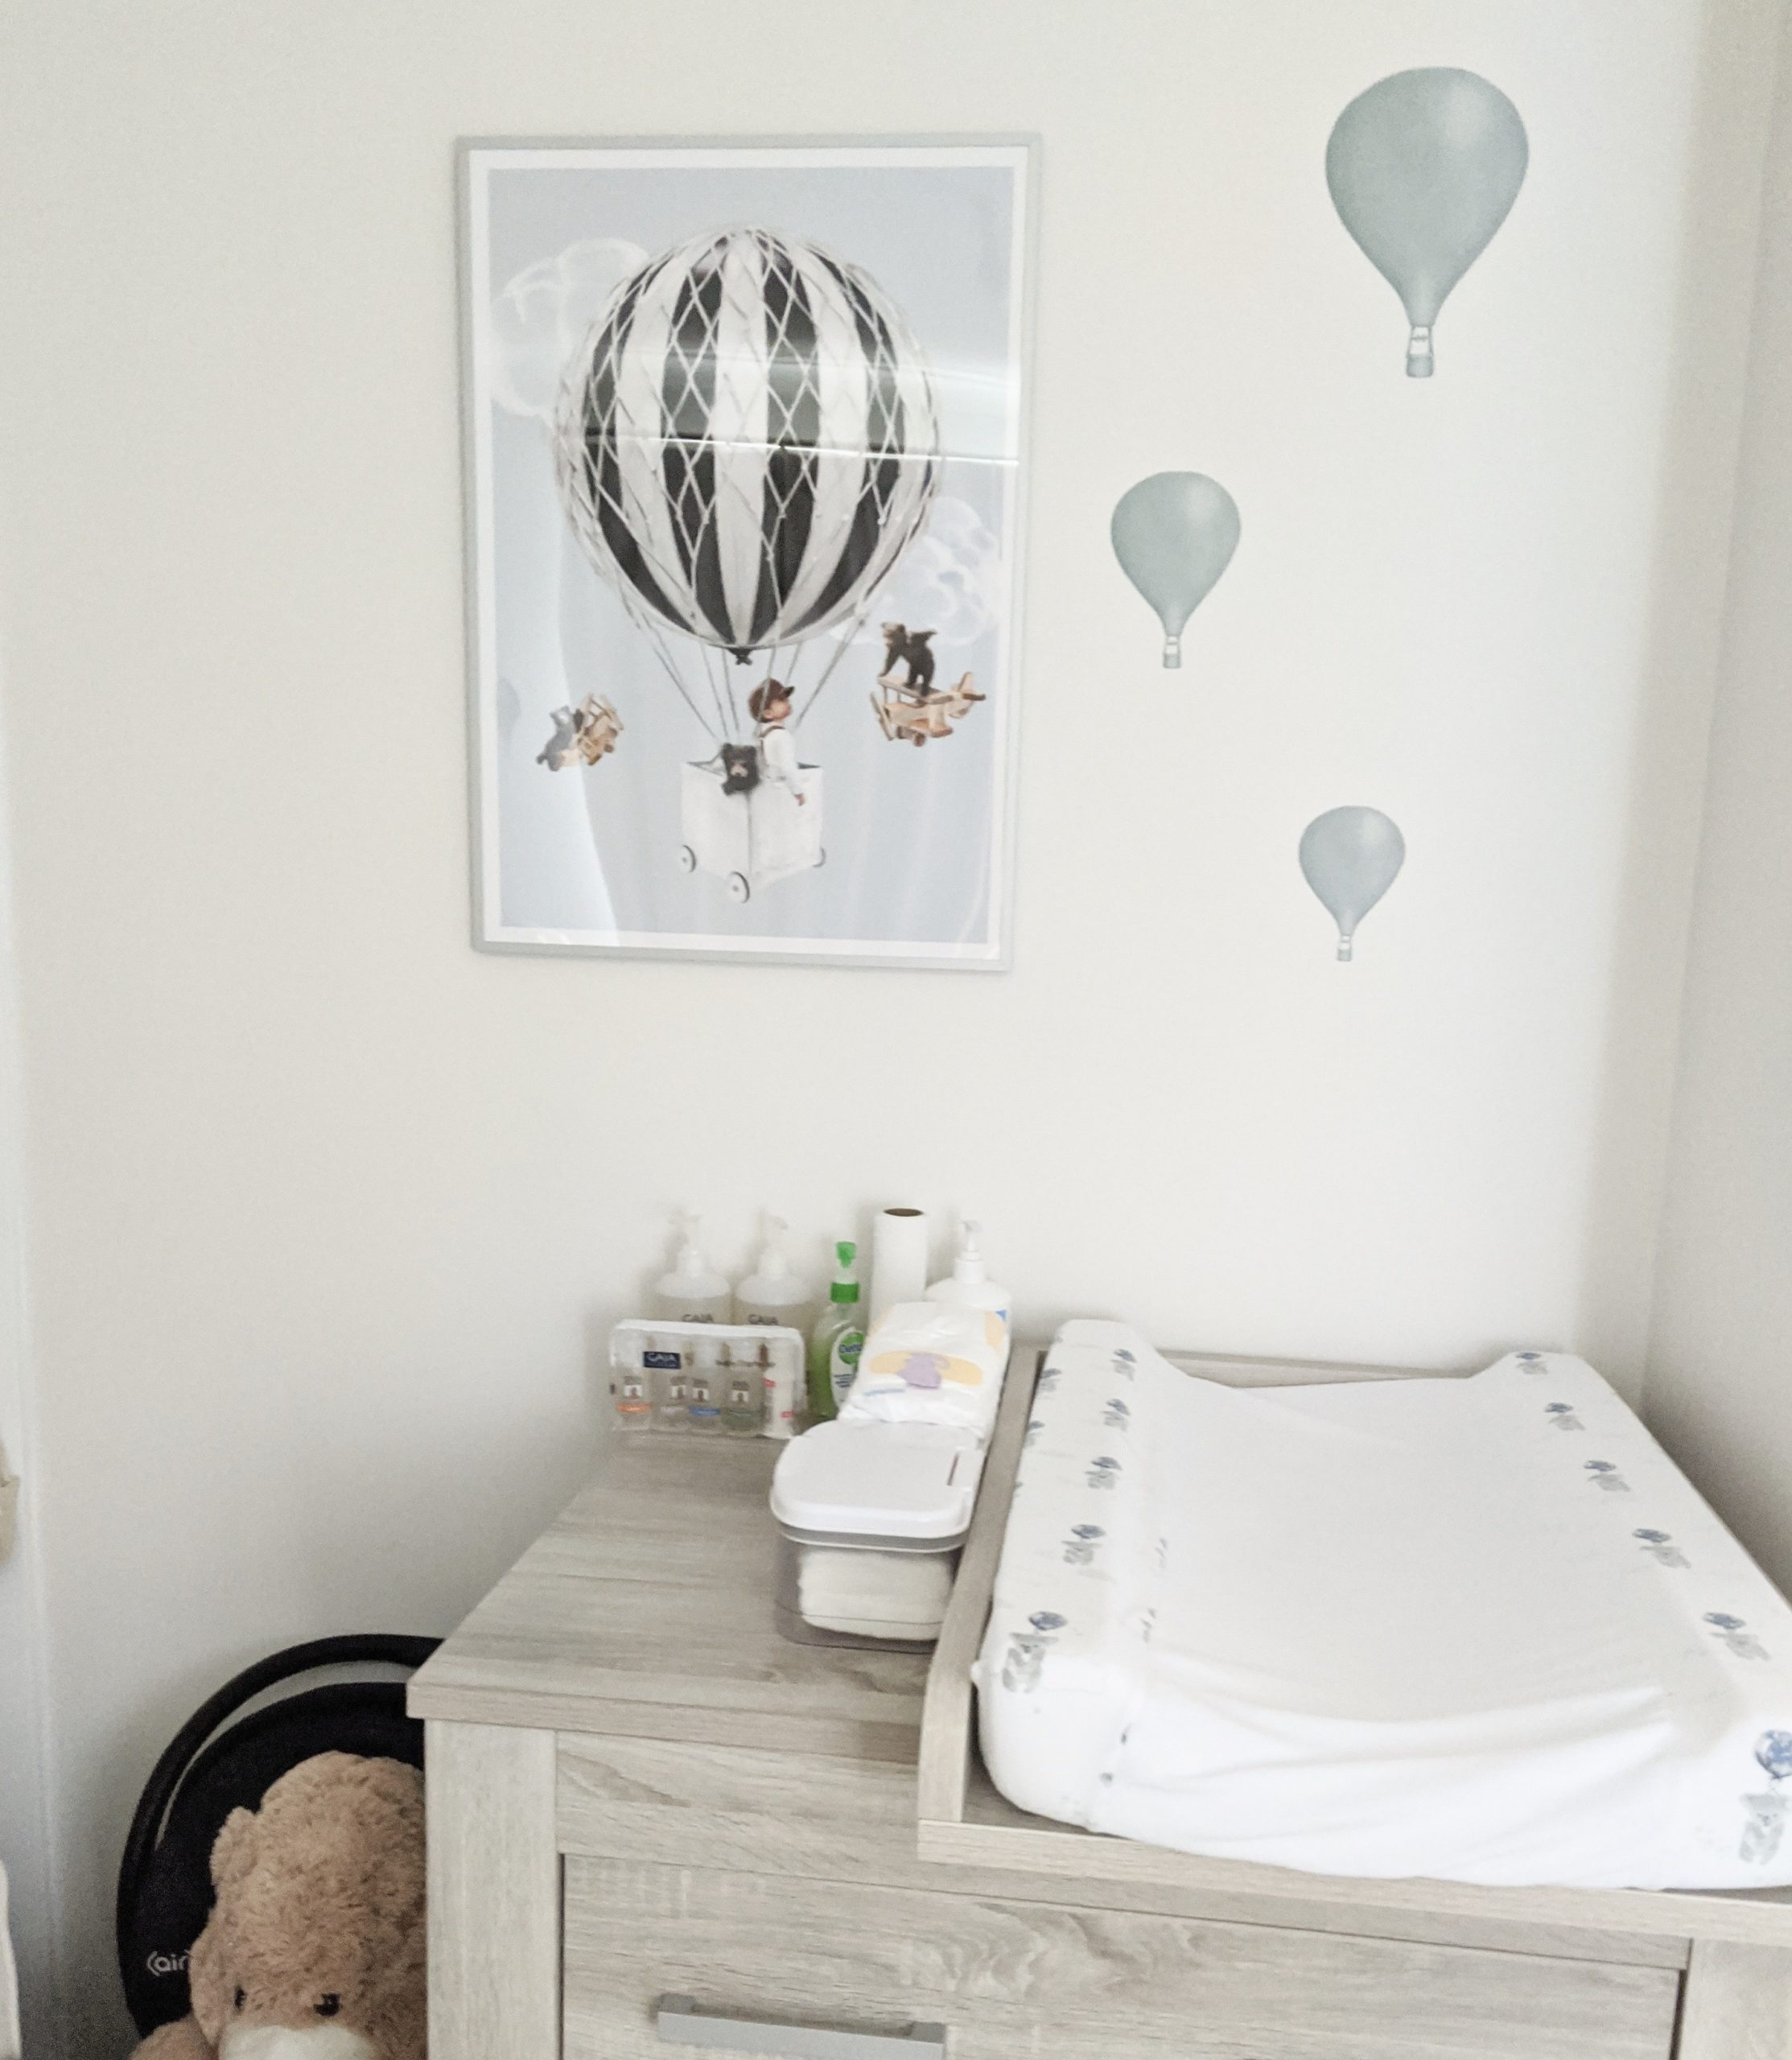 Changing table and changing mat on top with nursery wall print and light blue balloon wall stickers above it